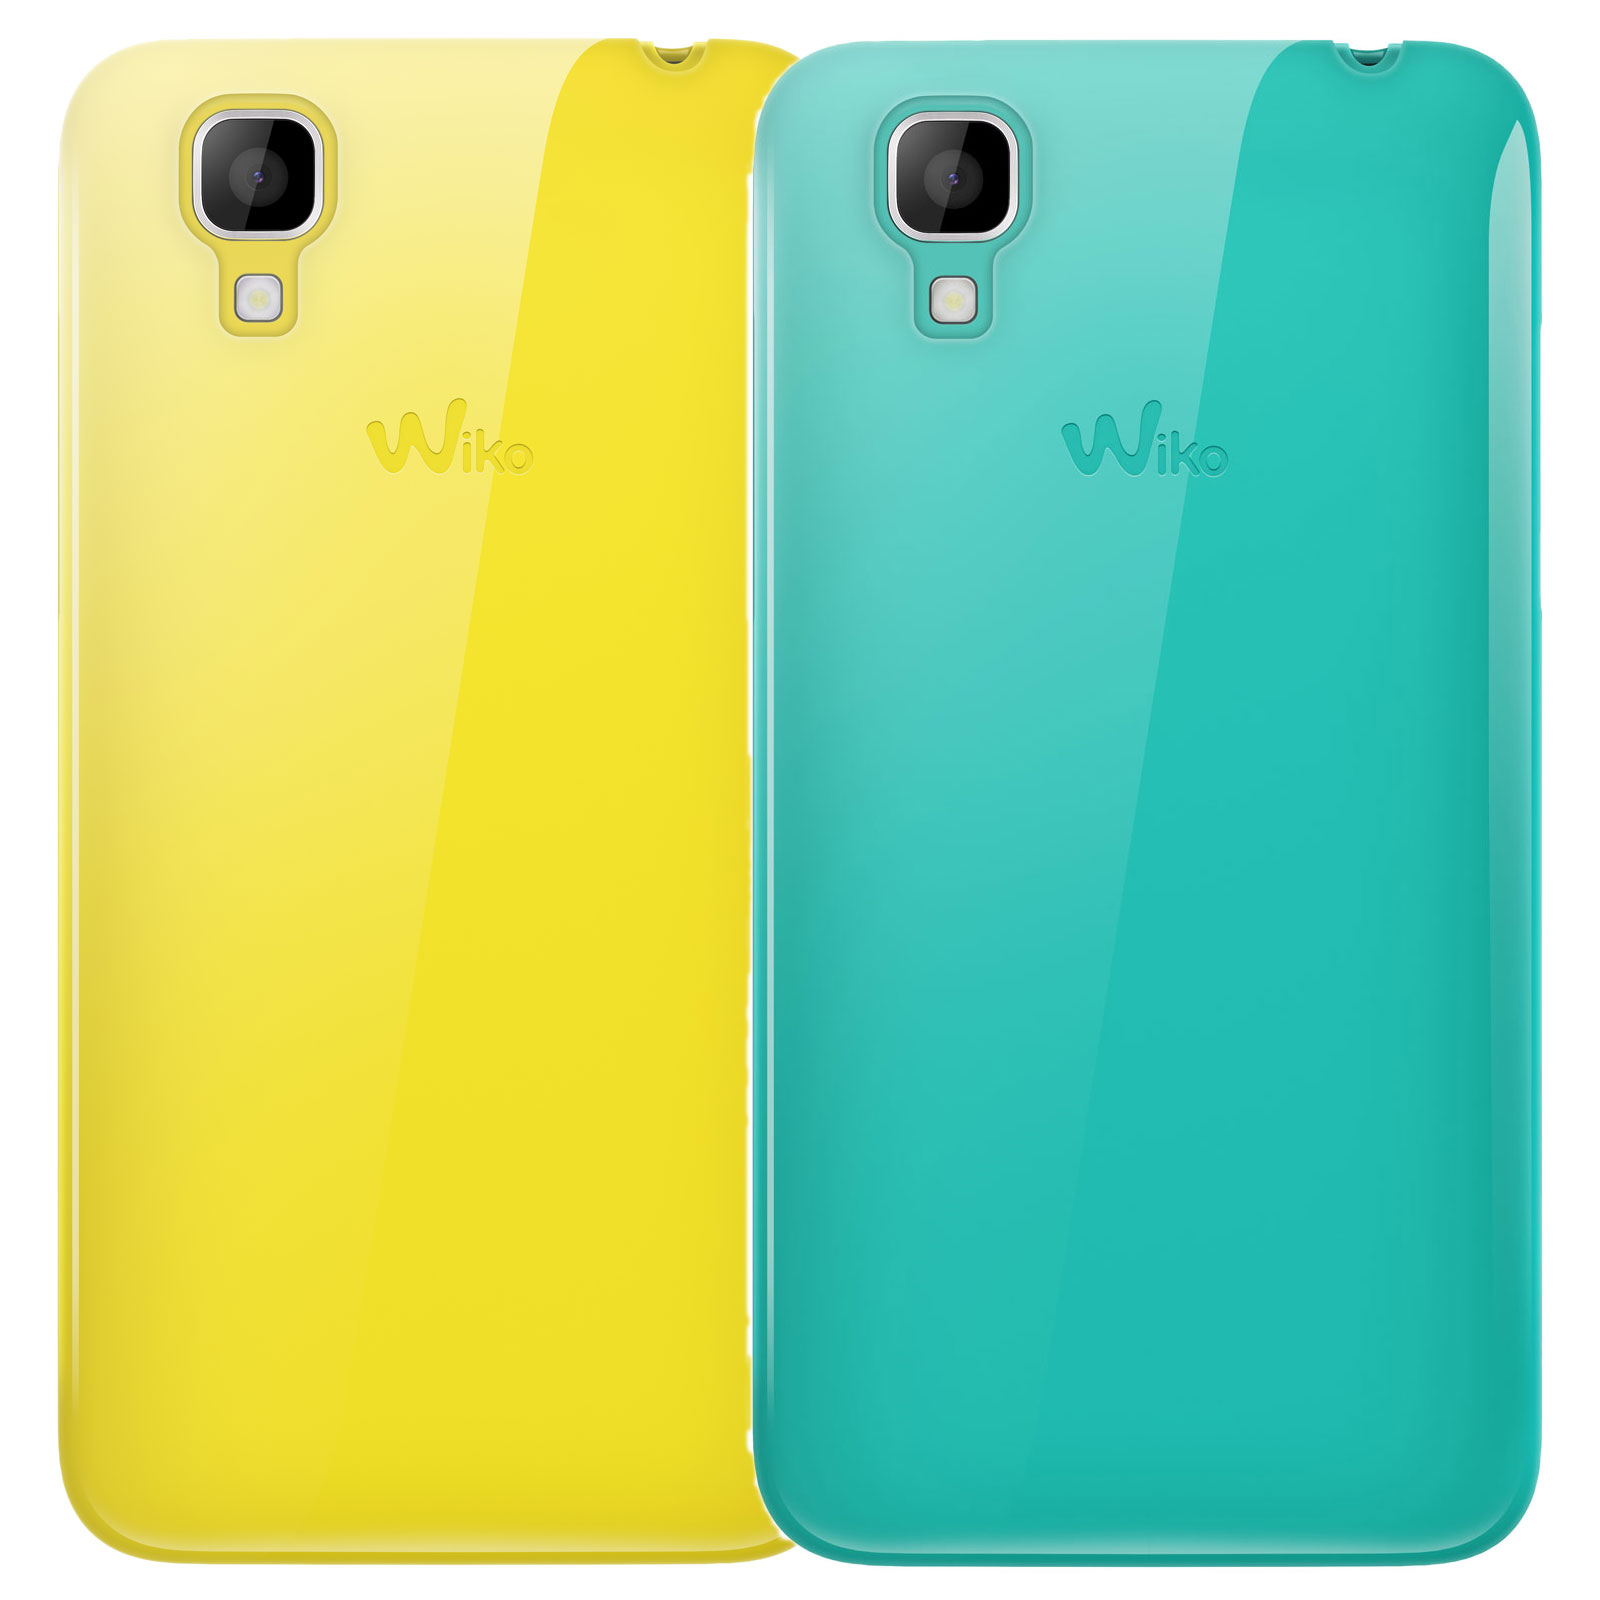 wiko lot de 2 coques jaune et turquoise wiko sunset etui. Black Bedroom Furniture Sets. Home Design Ideas